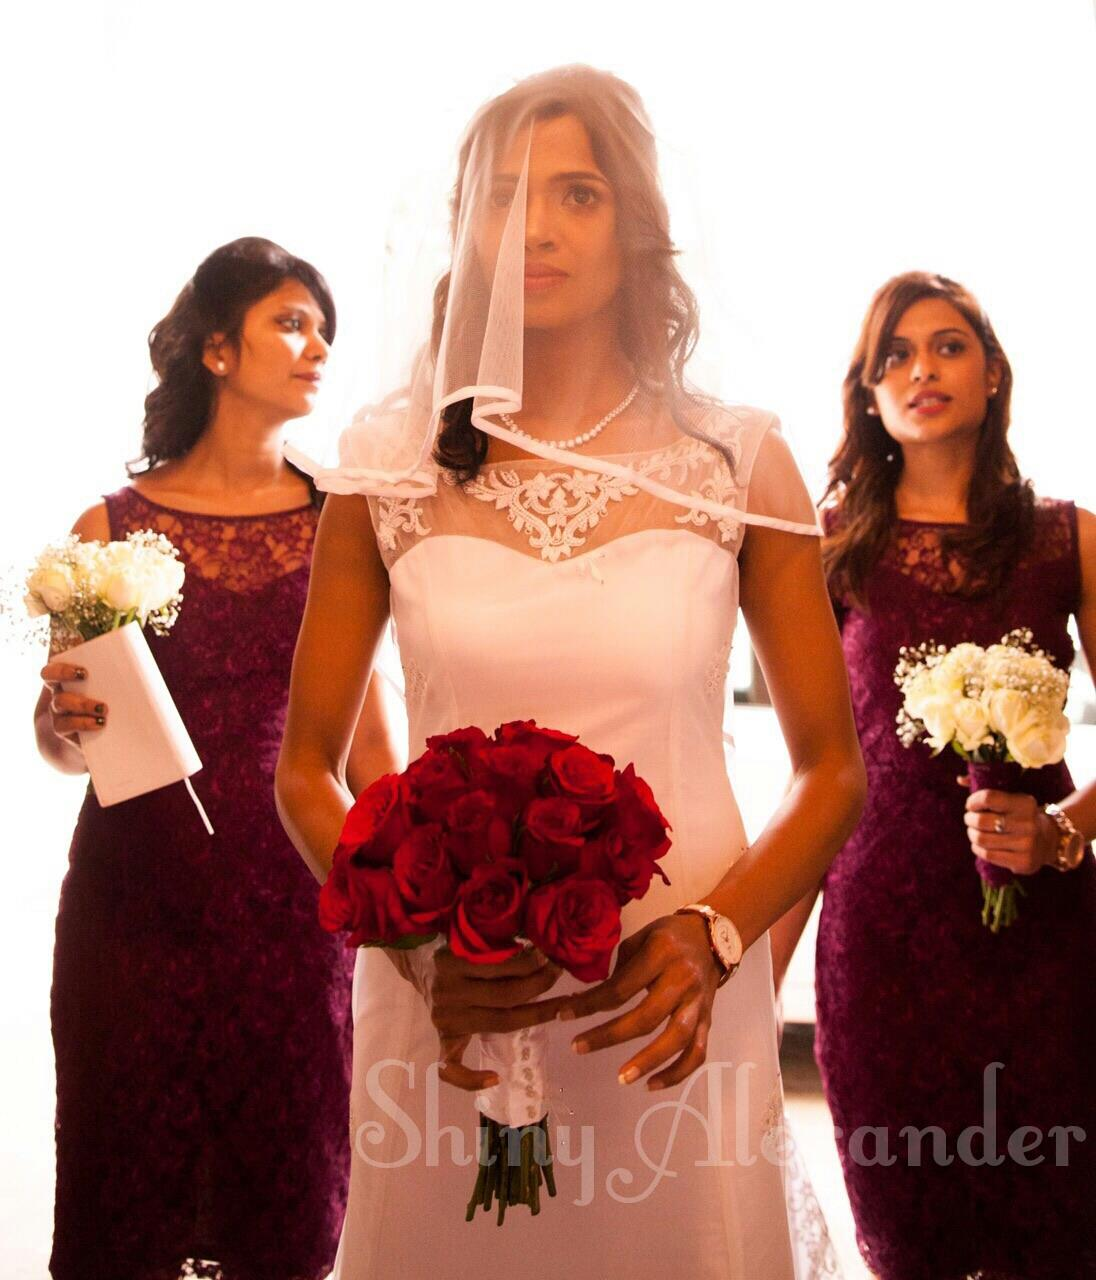 8_Custom designed wedding gown and bridesmaid's dresses.....